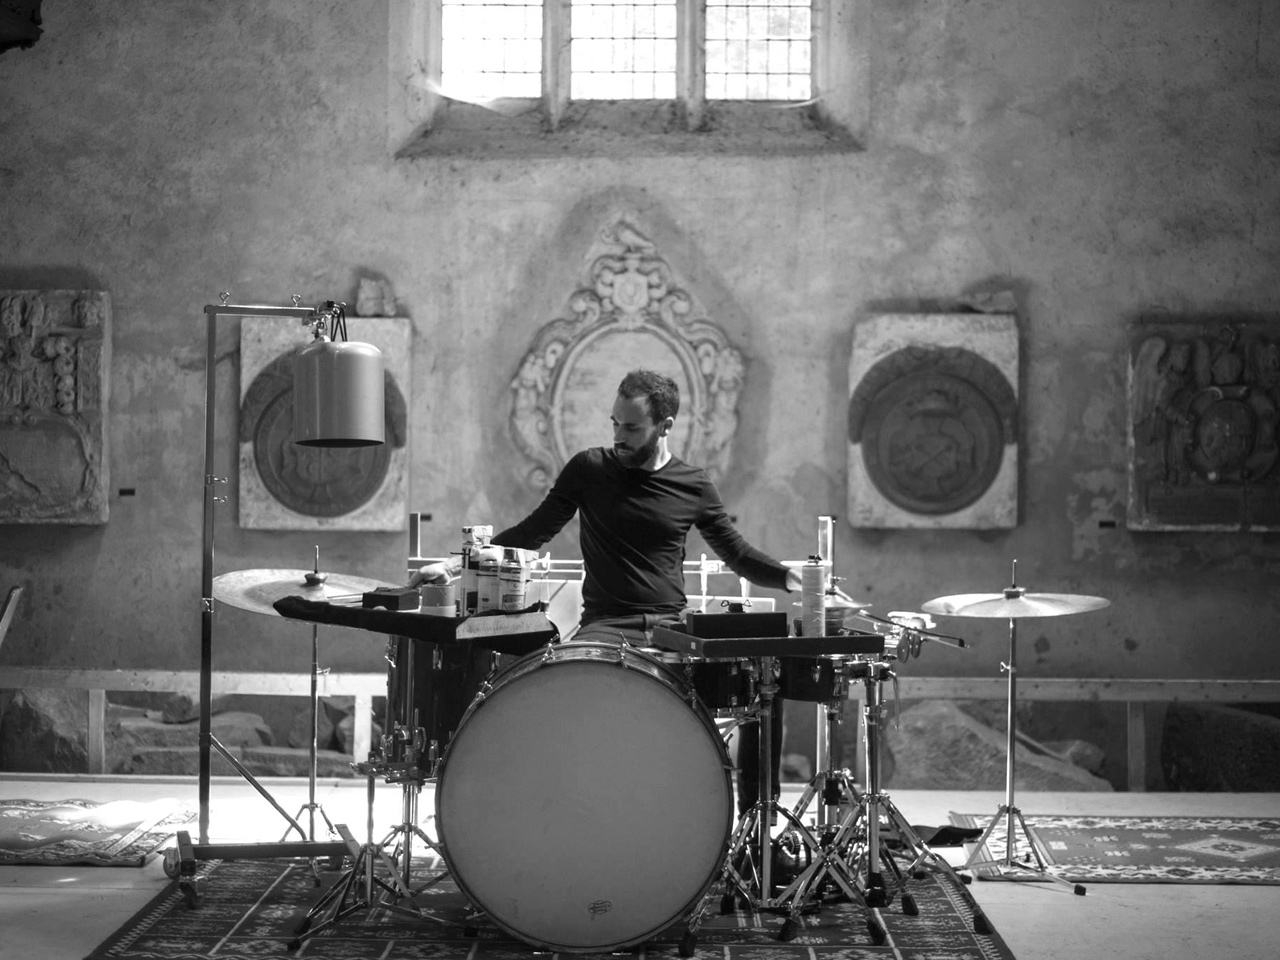 Alexandre Babel on drums - OVER/UPPER